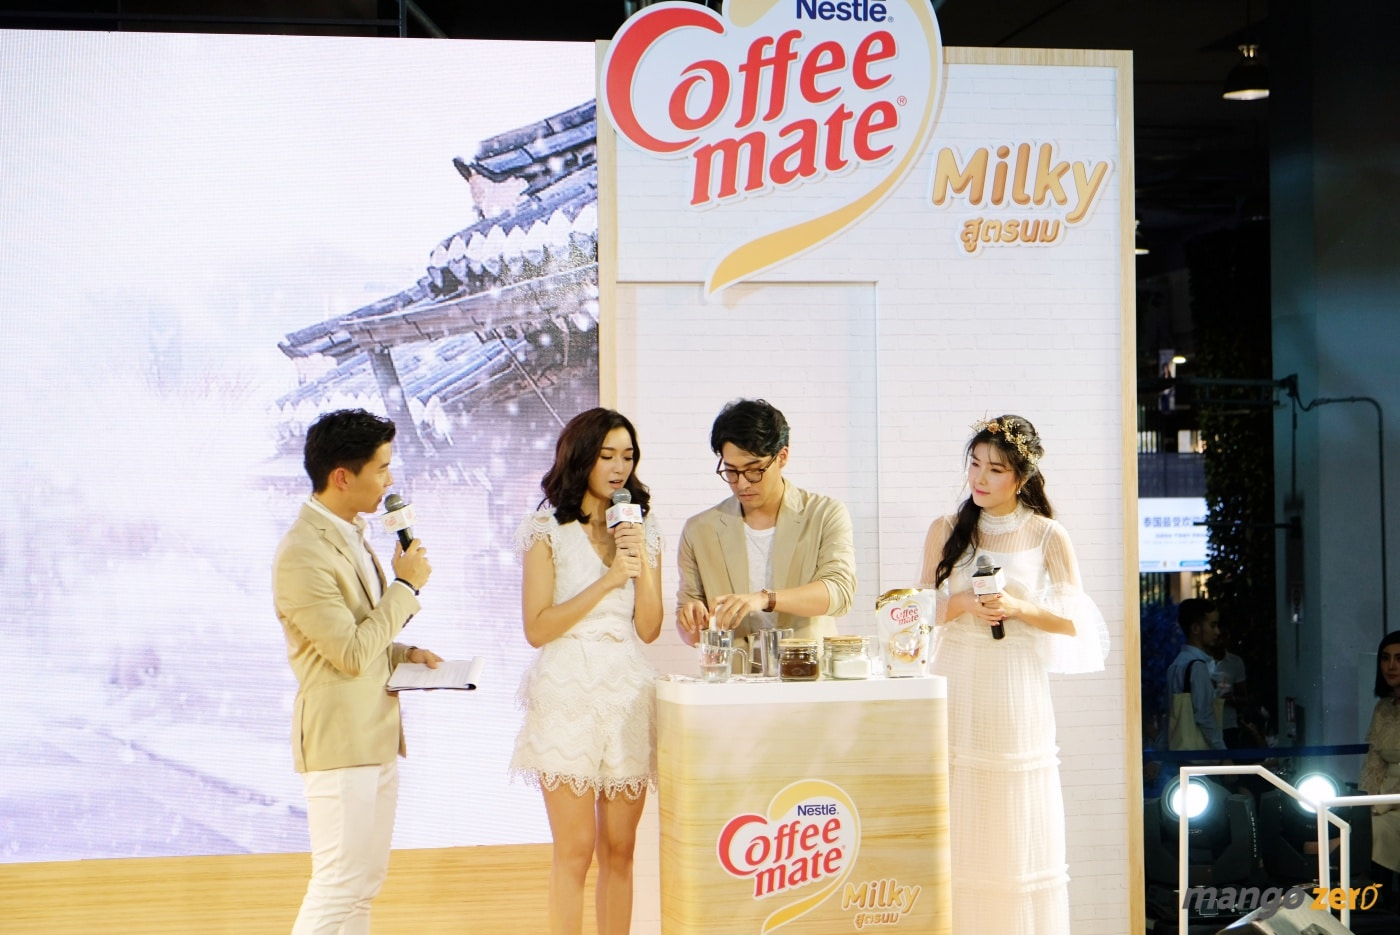 new-product-nestle-coffee-mate-milky-from-korean-29